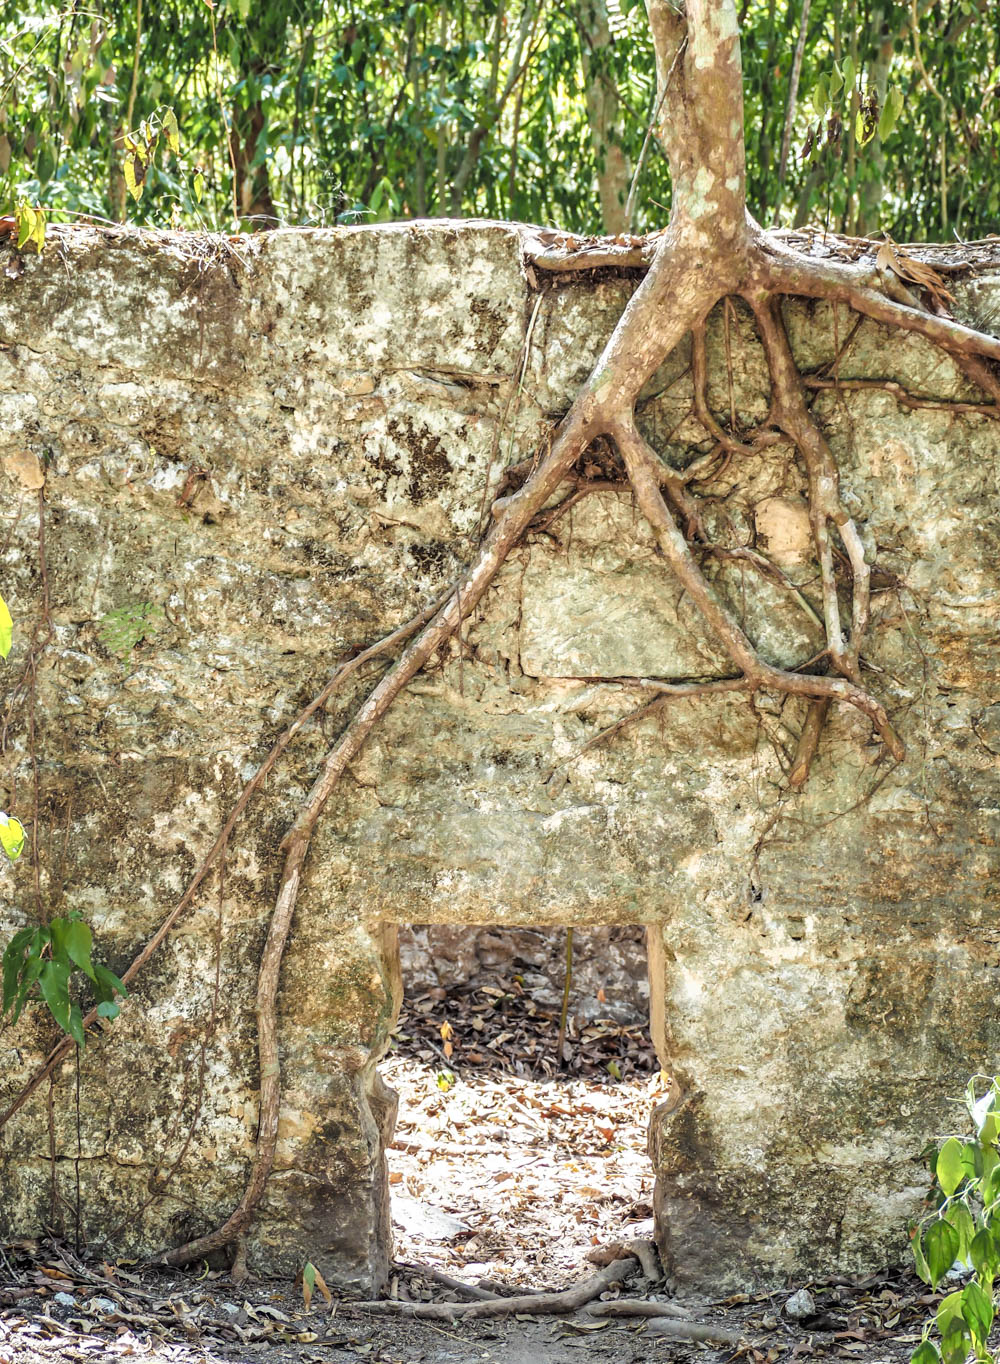 tree roots overgrowing an ancient structure on belize to tikal day trip